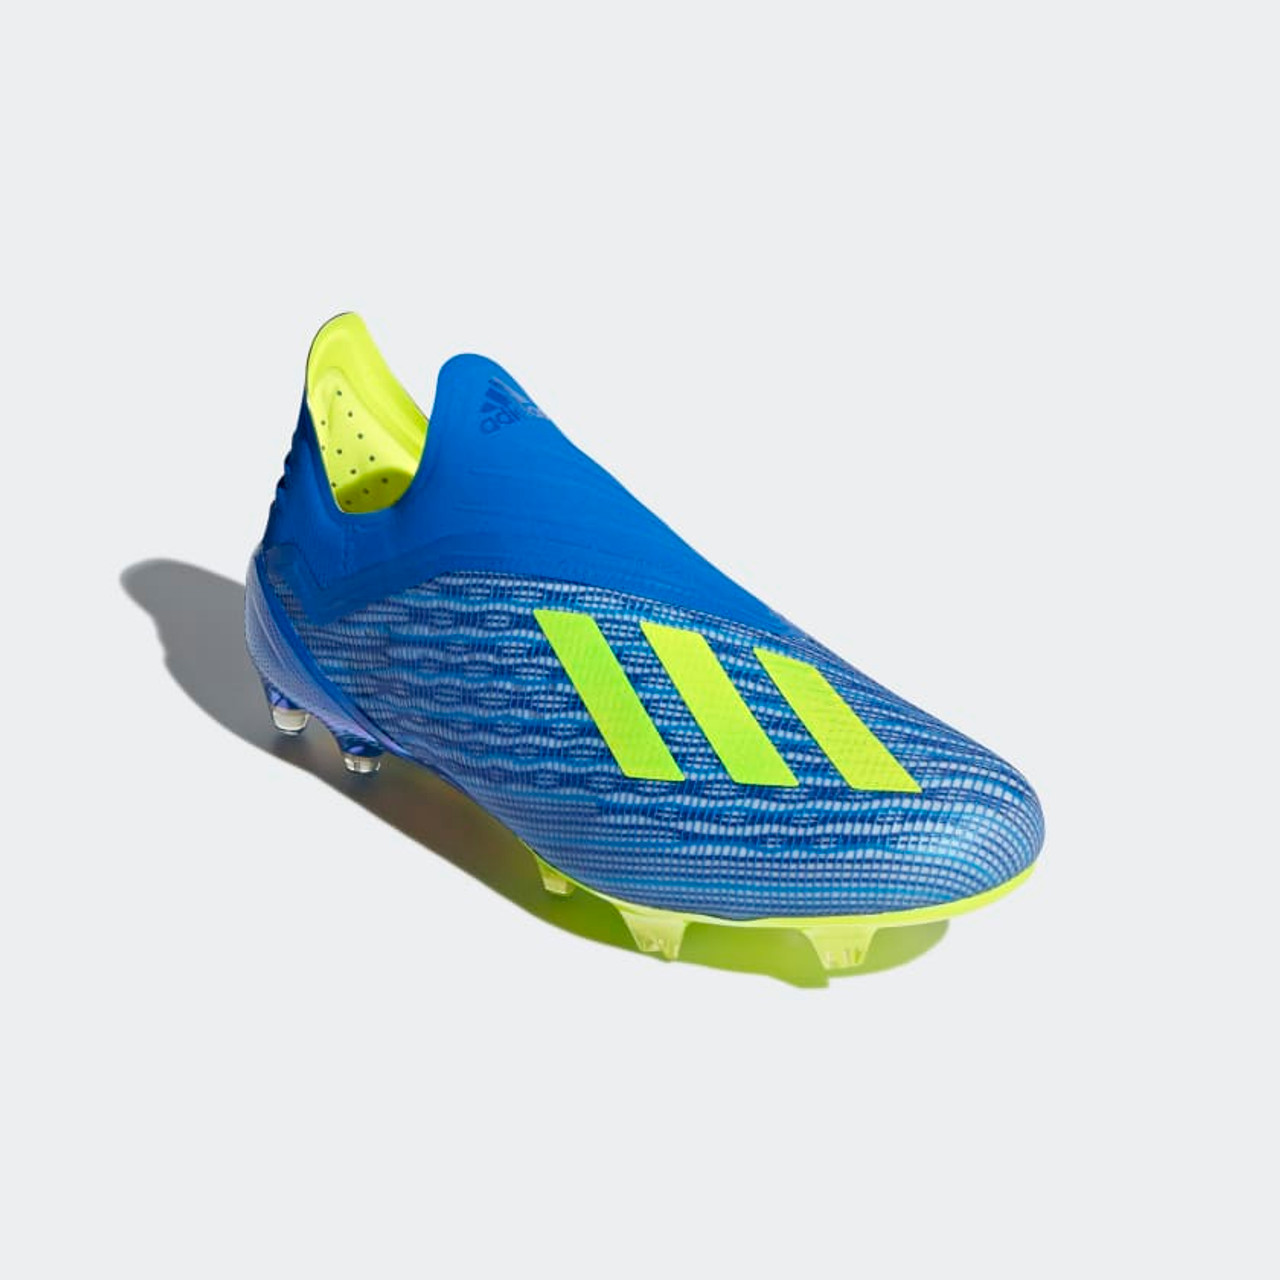 puesto A través de lector  ADIDAS X 18+ FG Cleats Blue/solar yellow - Soccer Plus